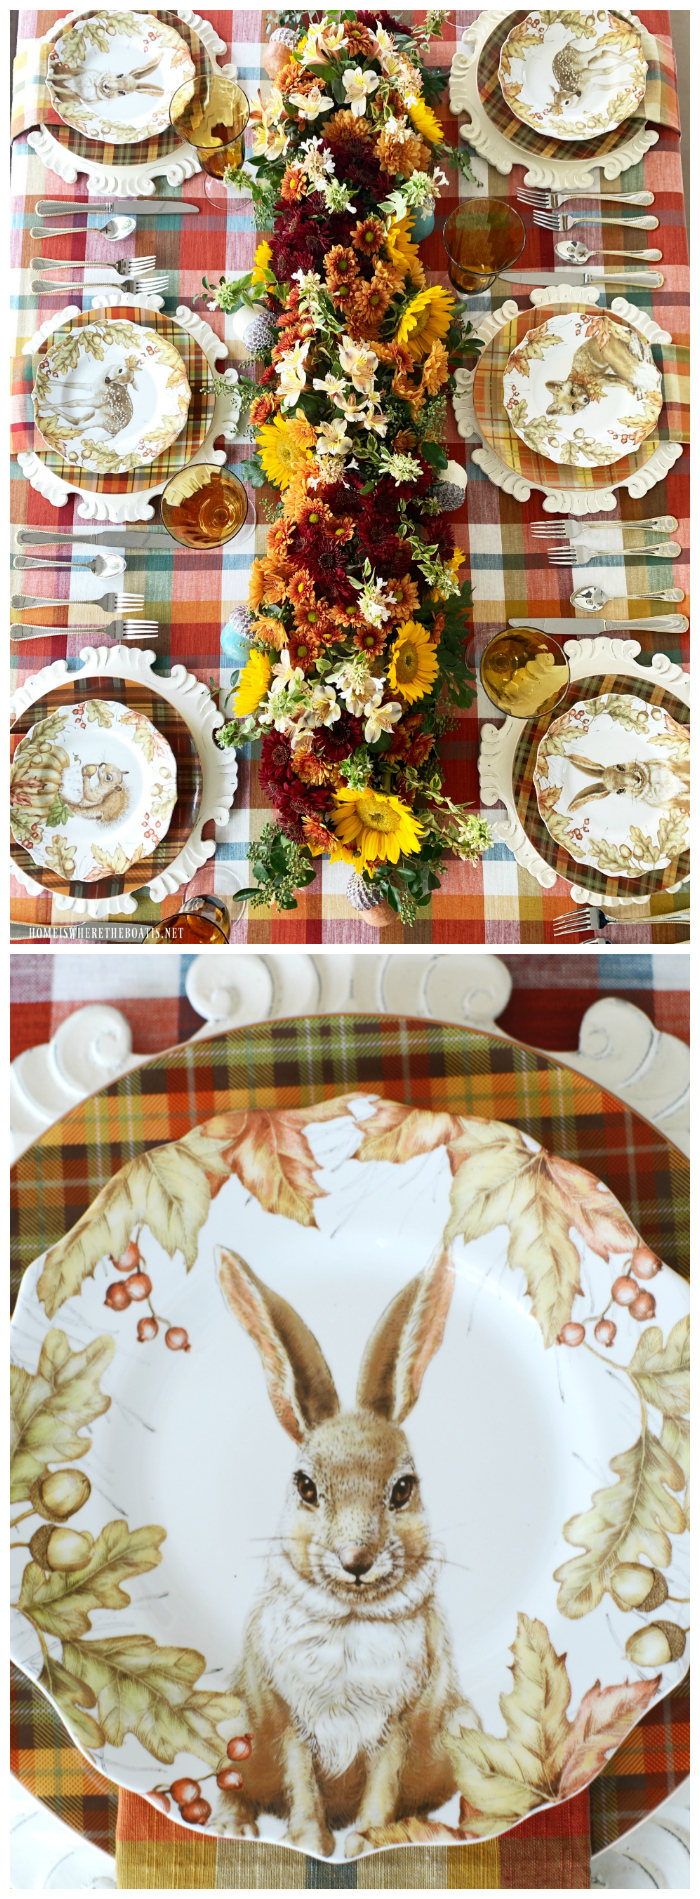 Woodland Friends Fall Table + DIY Floral Runner | ©homeiswheretheboatis.net #fall #tablescapes